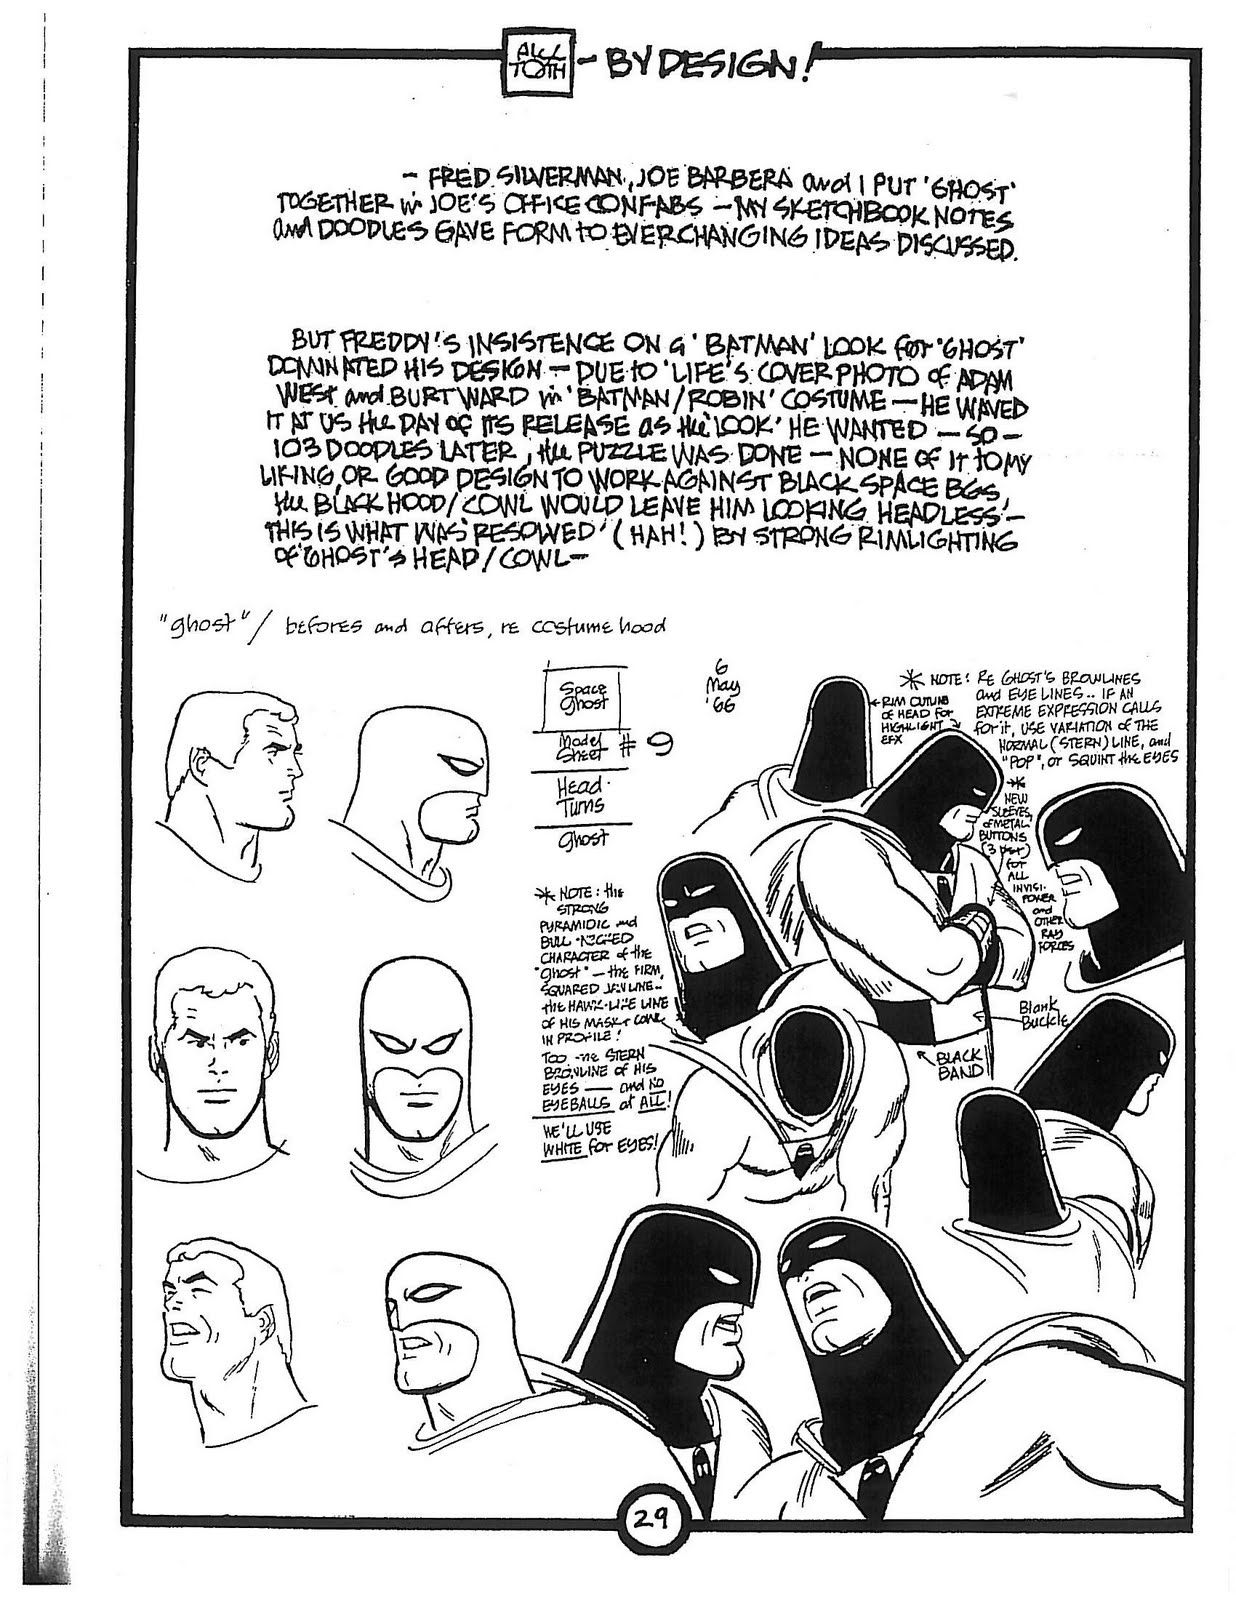 Alex Toth on his work on Hanna Barbara's Space Ghost. Odd to see ...